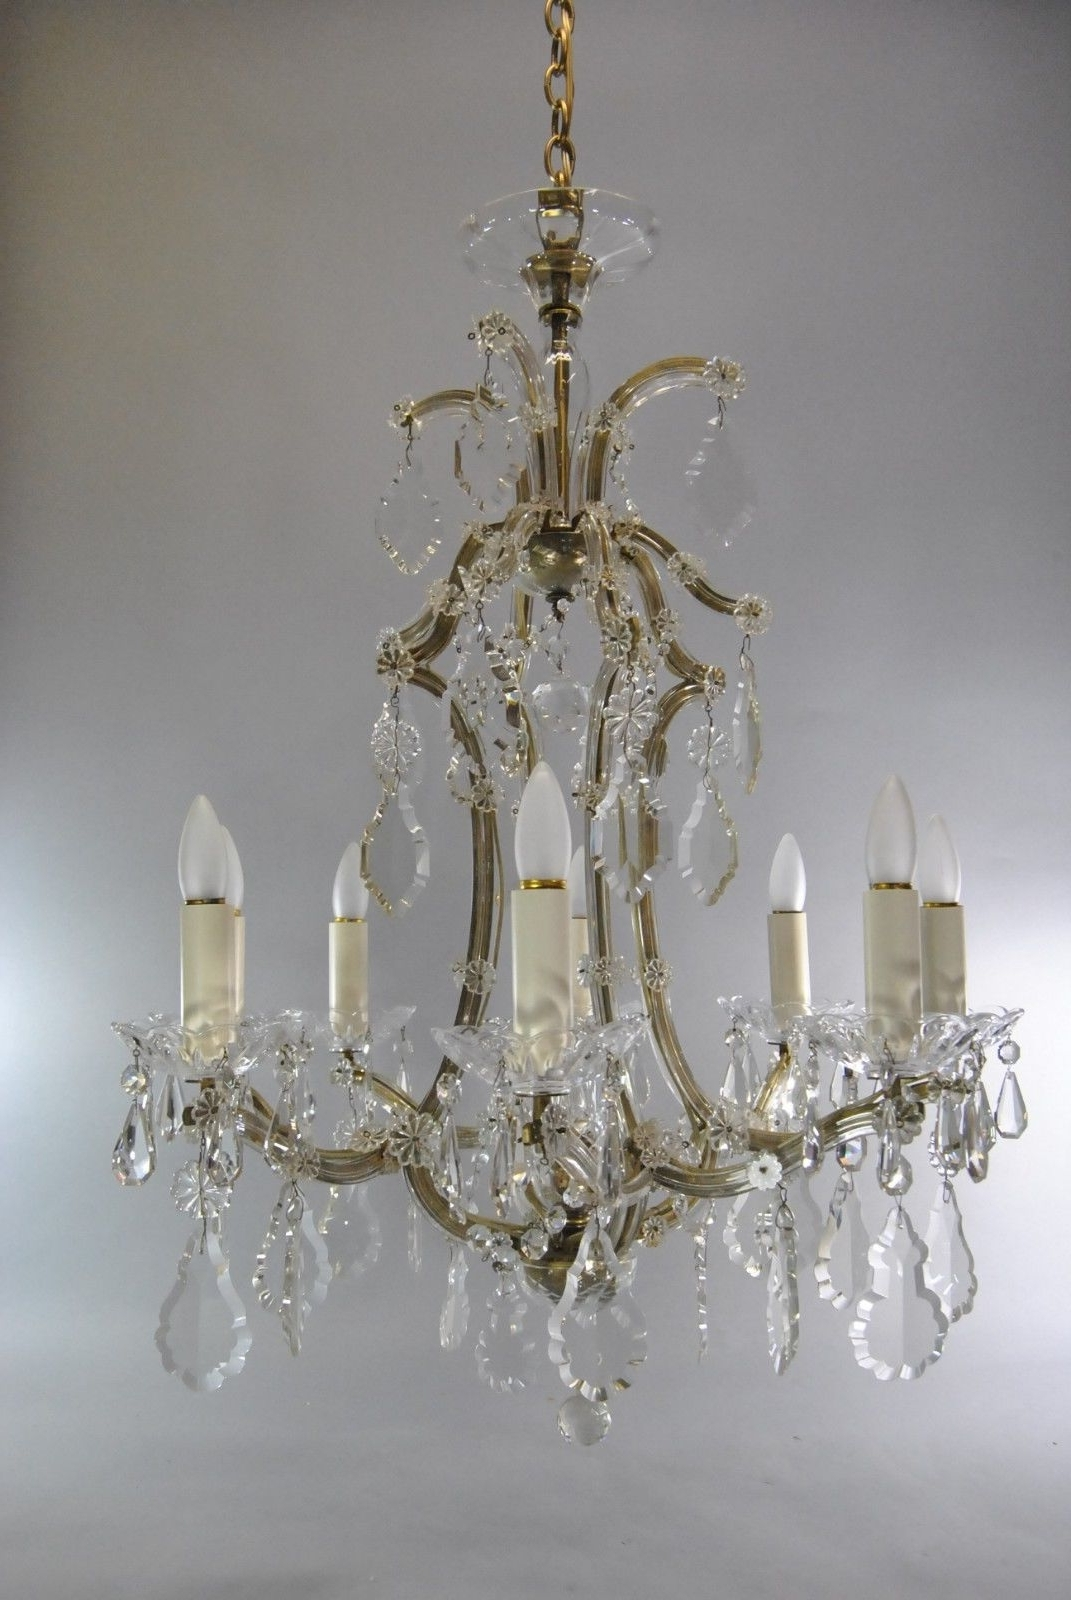 Chandelier: Stunning French Crystal Chandelier French Empire Intended For Newest French Crystal Chandeliers (View 4 of 20)